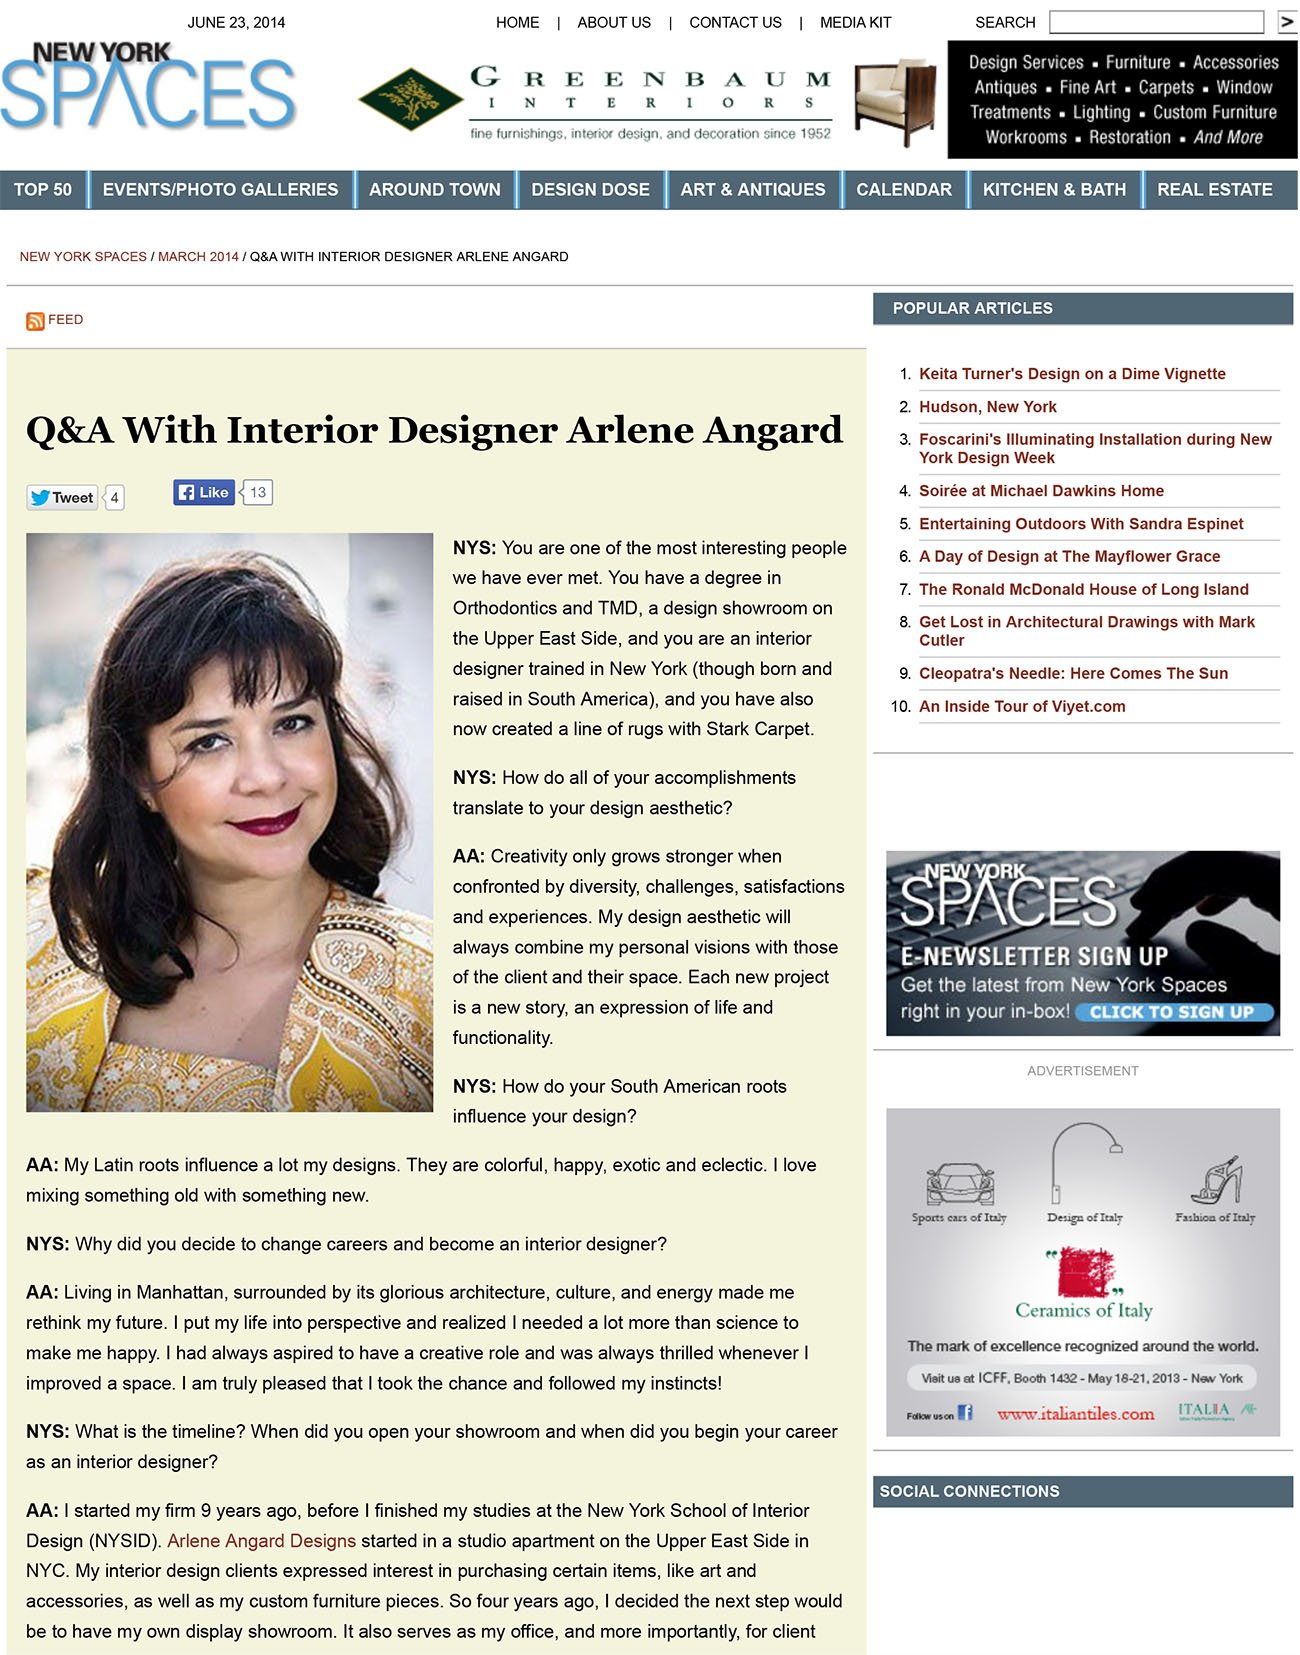 Q&A With Interior Designer Arlene Angard - New York Spaces - Mar